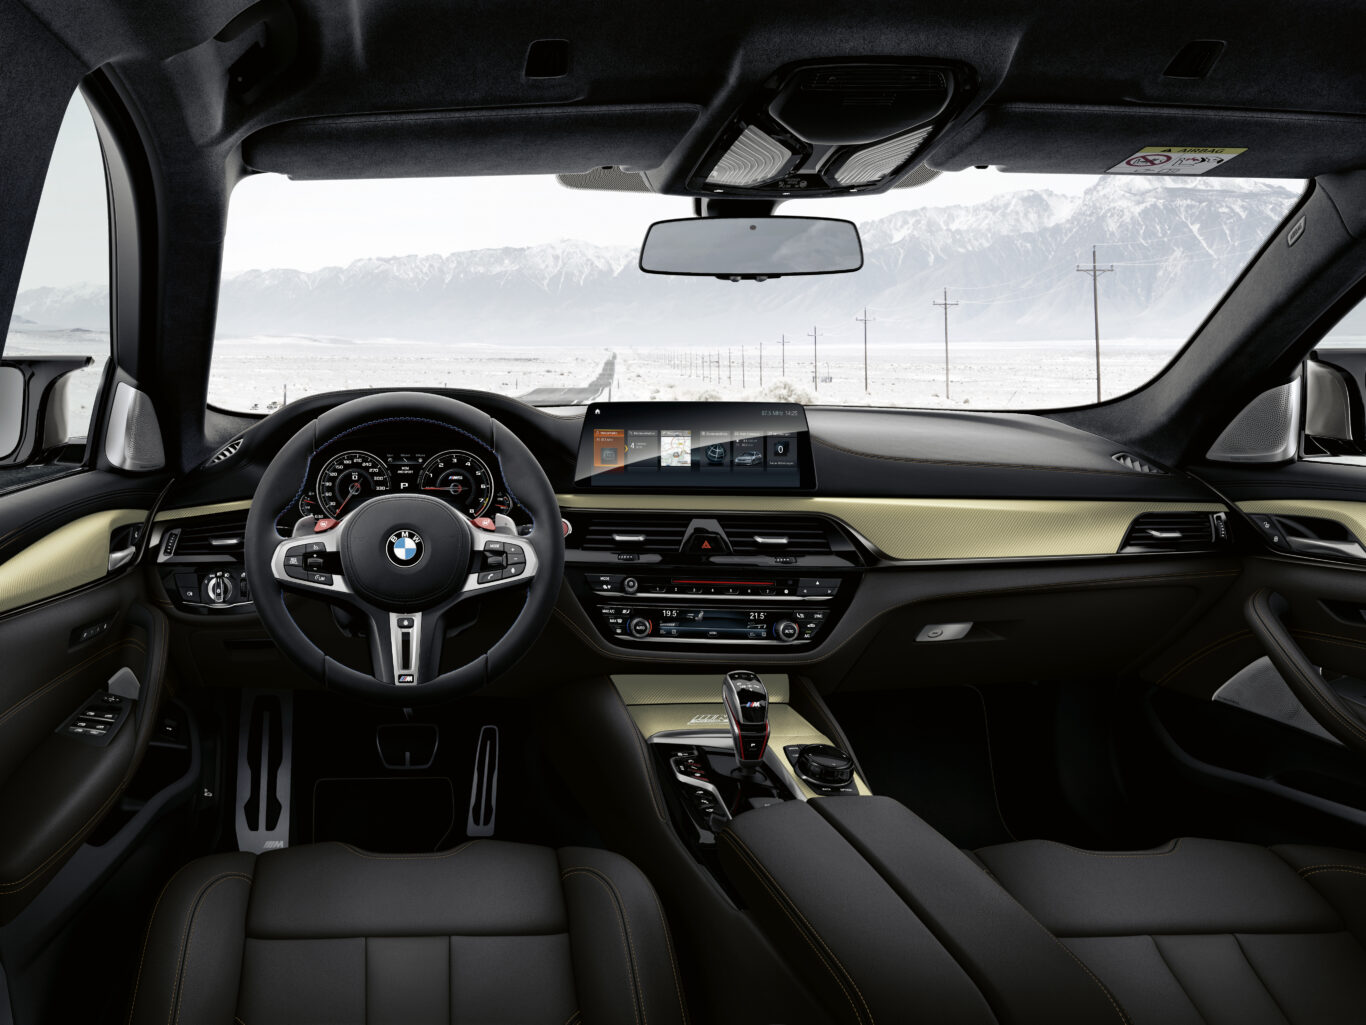 The interior of the car features a striking gold finish